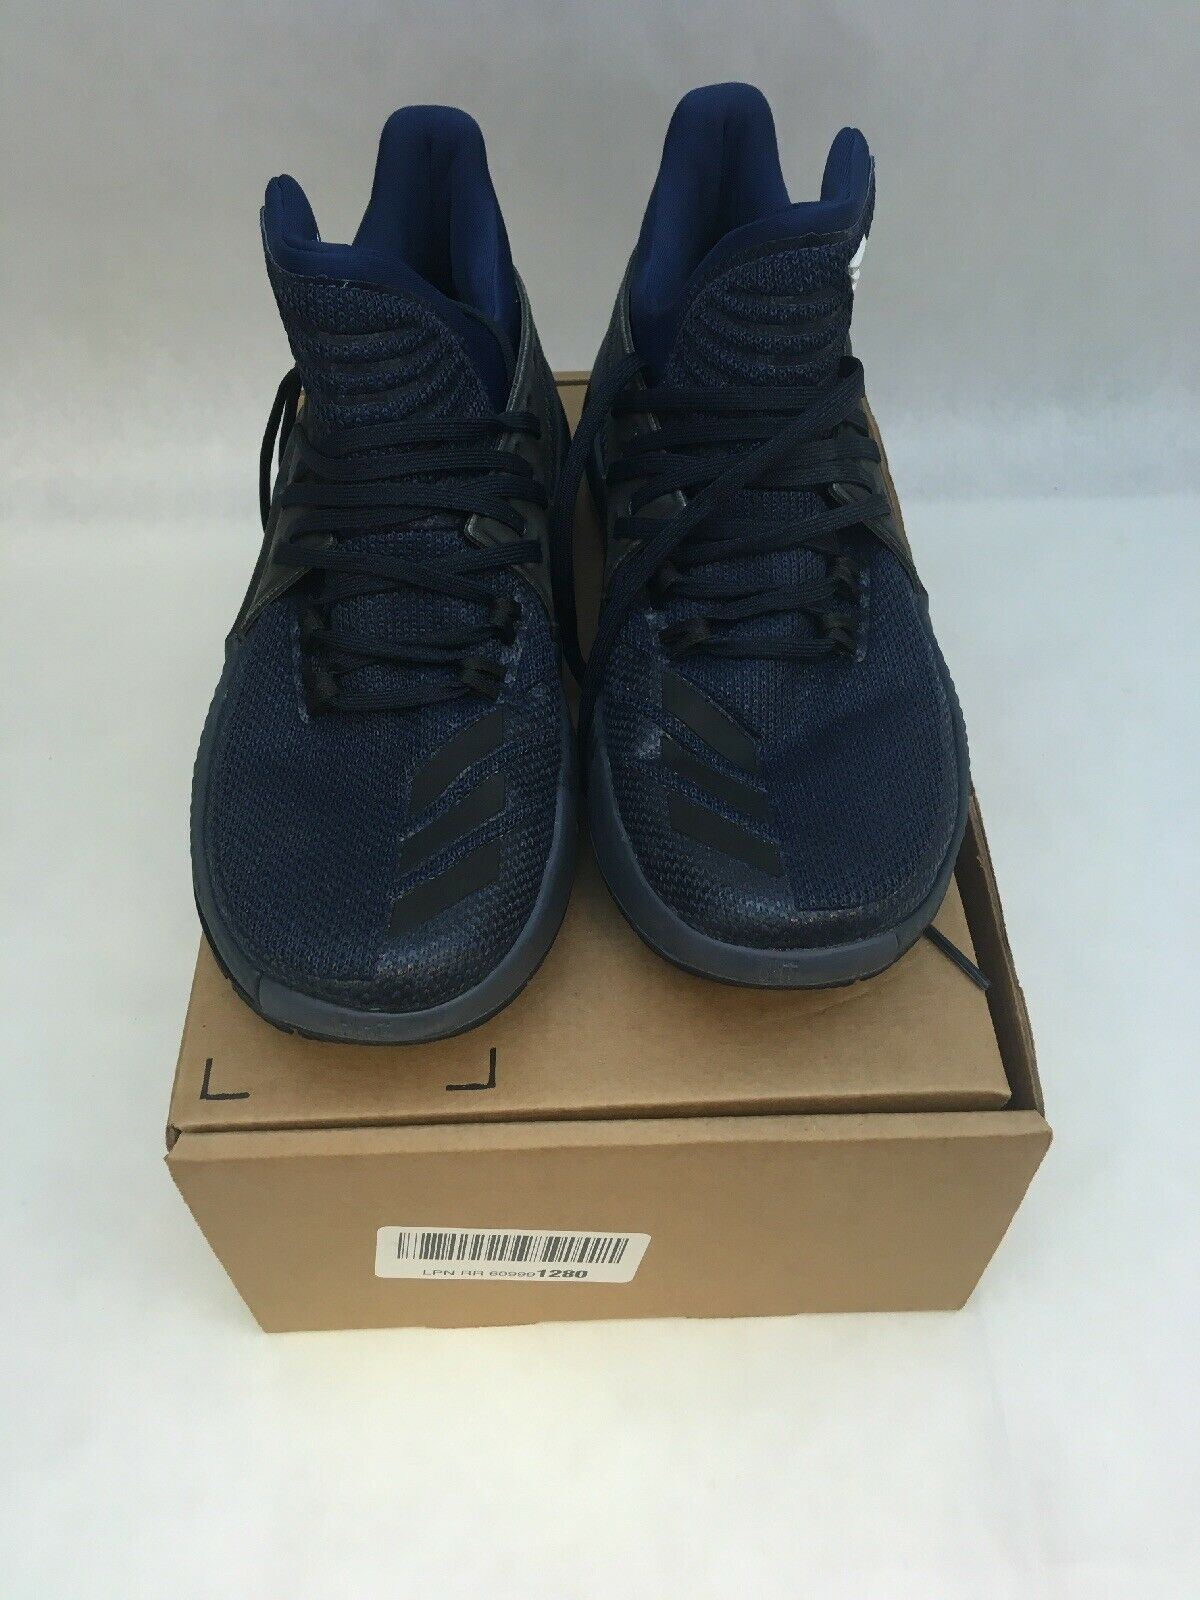 Adidas Wear The Letter bluee Size 8 Basketball shoes